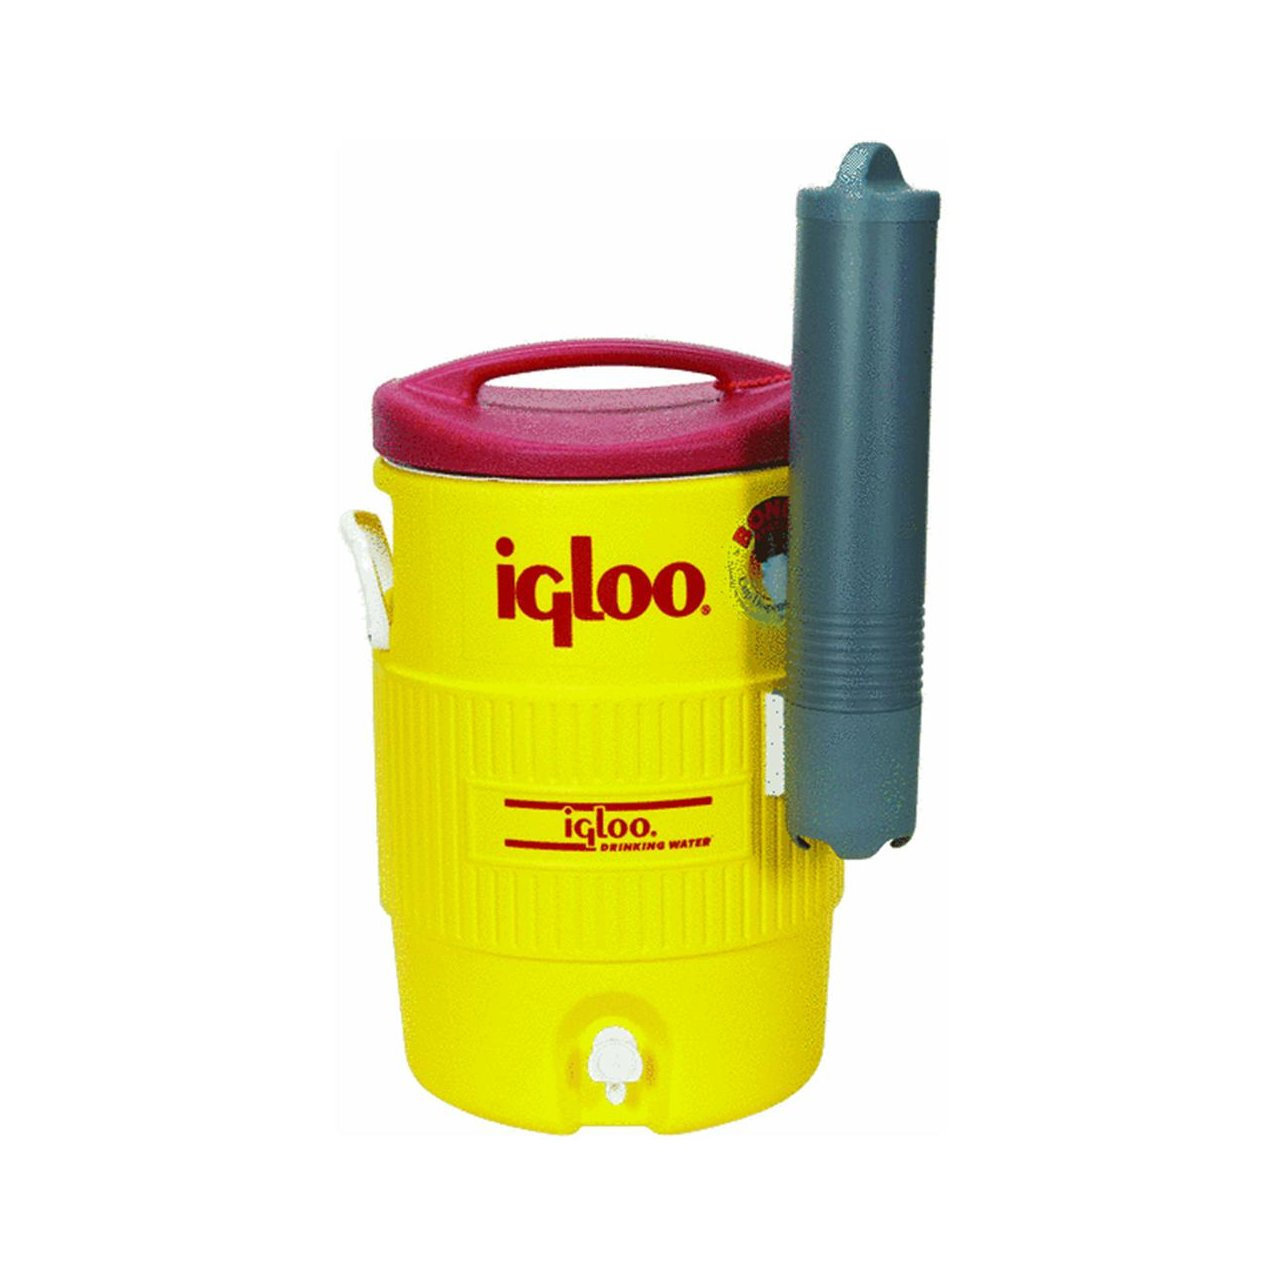 Igloo Water Cooler W/Cup Dispenser 5 Gal White